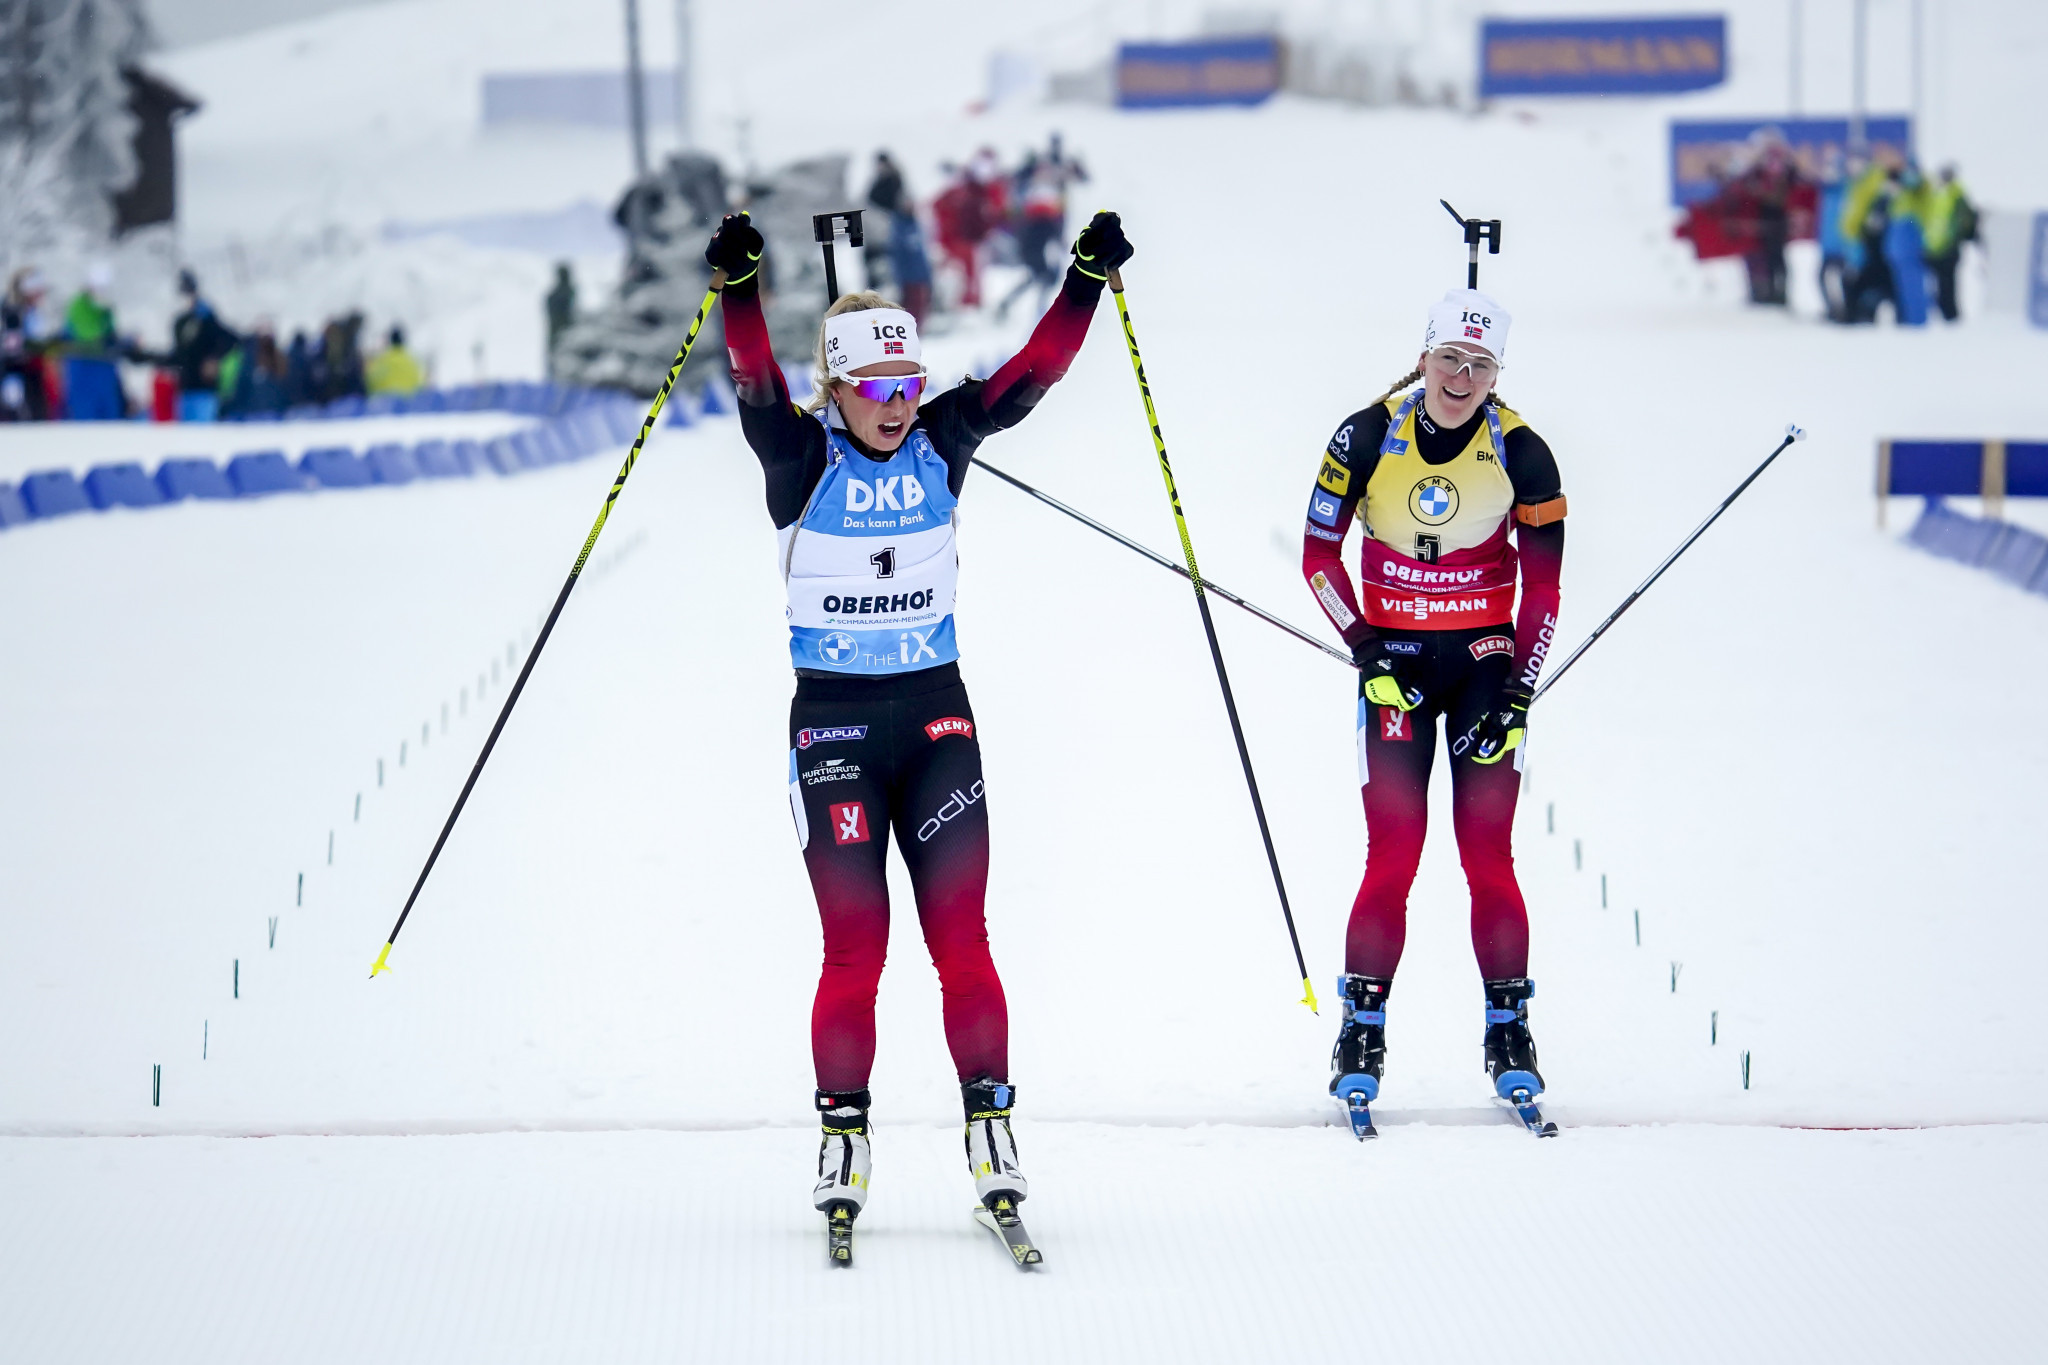 Eckhoff eyes hat-trick of wins as Norwegian team bids for more IBU World Cup joy in Oberhof